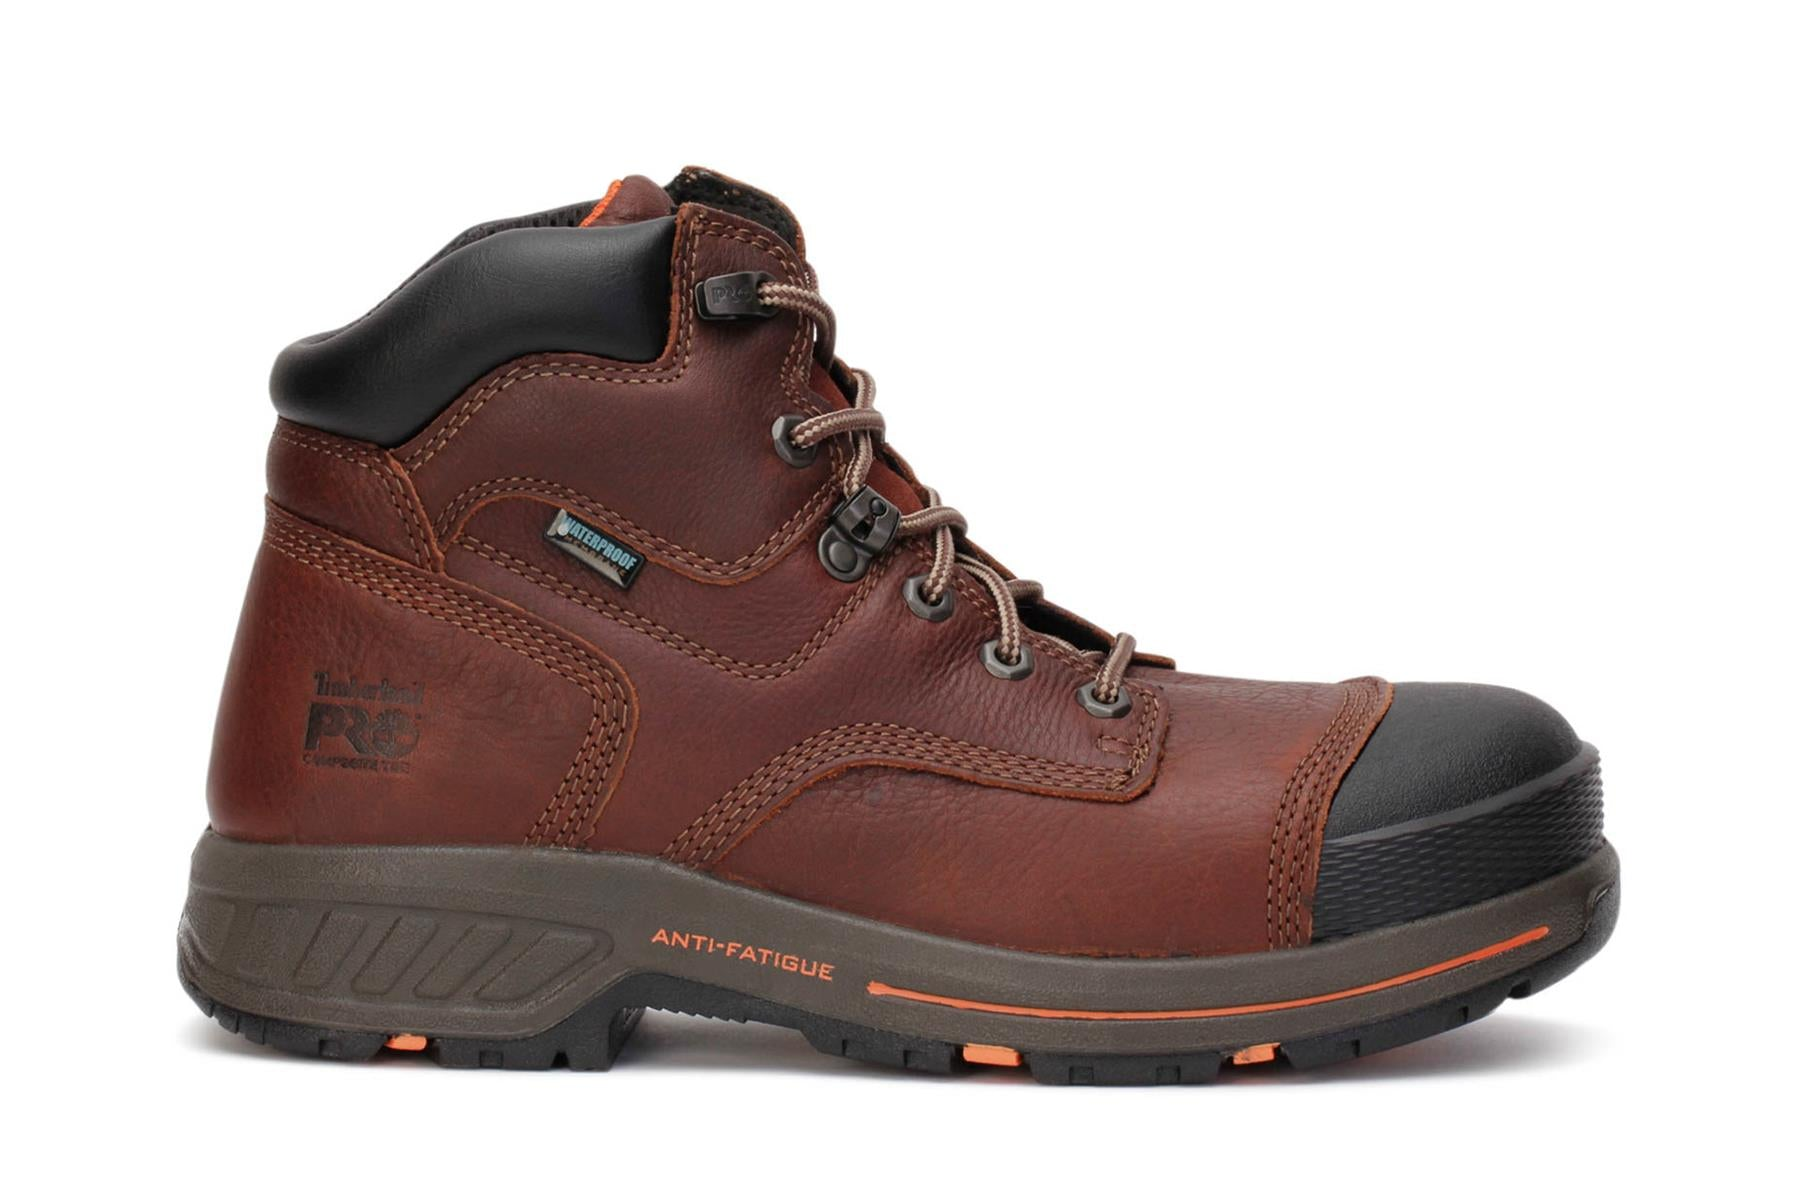 timberland-pro-mens-helix-hd-6-compsite-safety-toe-work-boots-brown-a1i4h-main